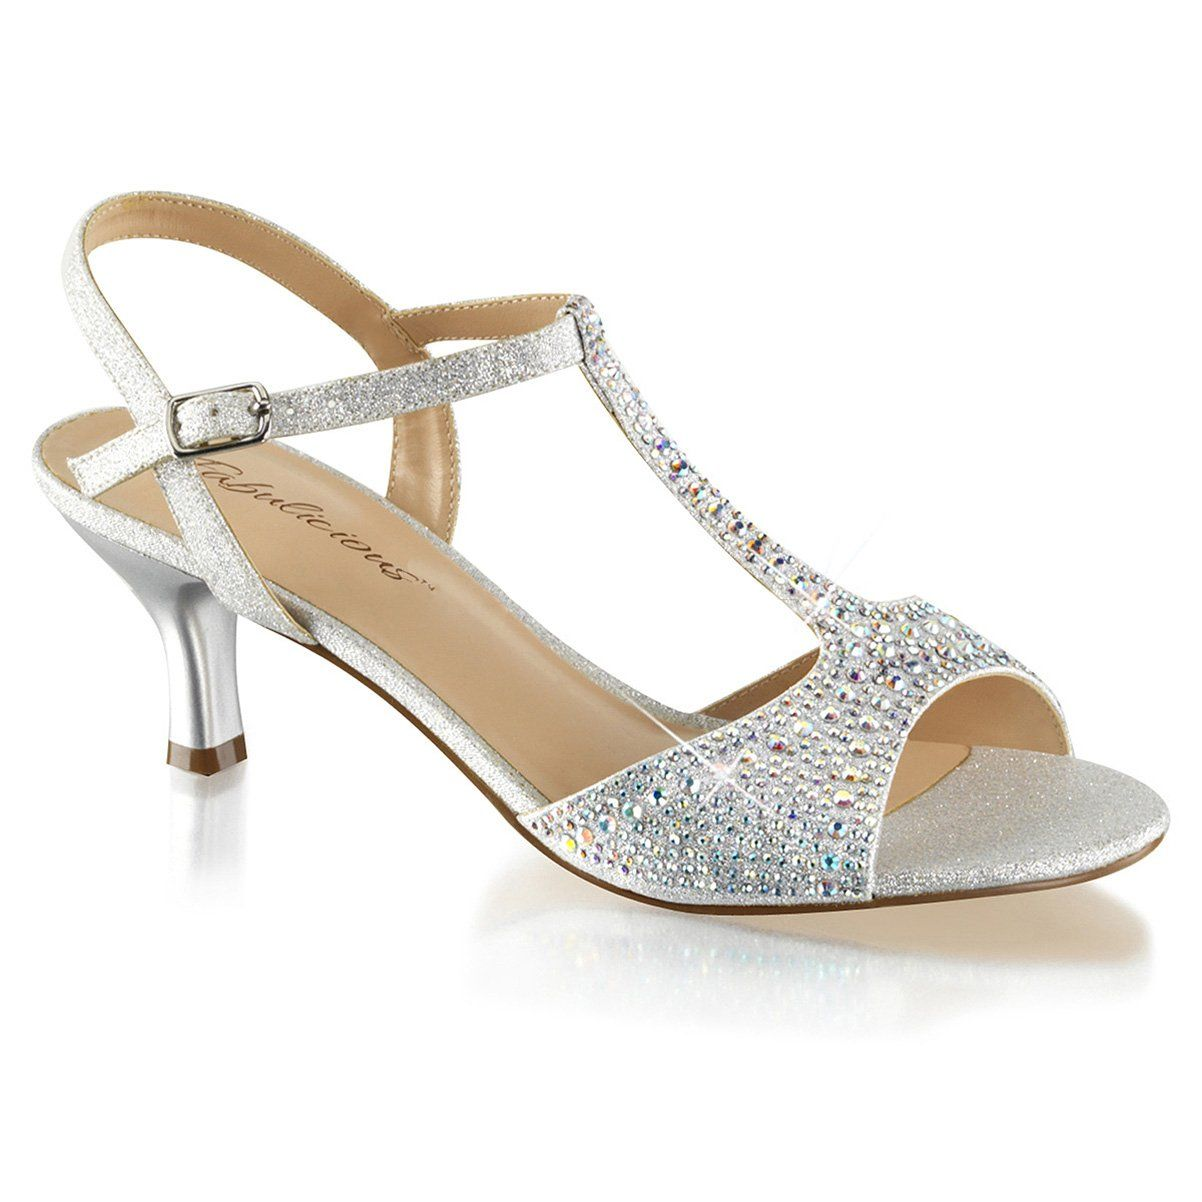 Womens Kitten Heel Wedding Shoes T Strap Sandals Silver Rhinestone ...